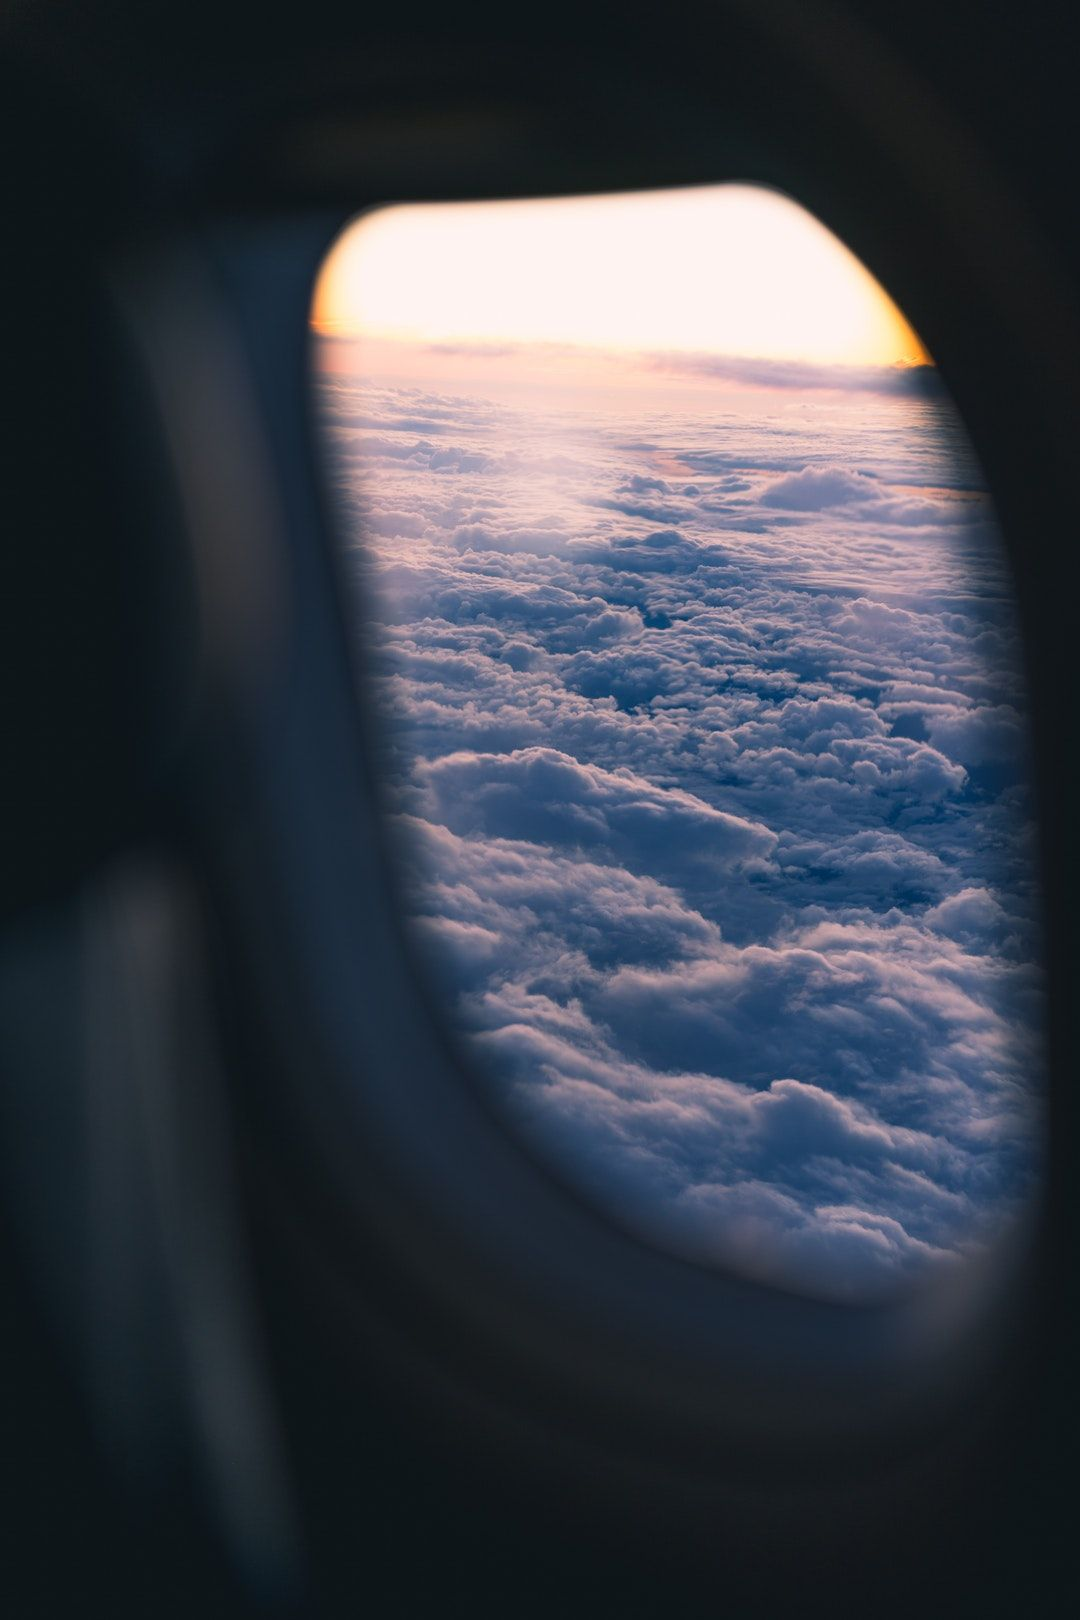 Download This Free Hd Photo Of Window Plane Airplane And Cloud By Dan Gold Danielcgold Best Landscape Photographers Airplane View Instagram